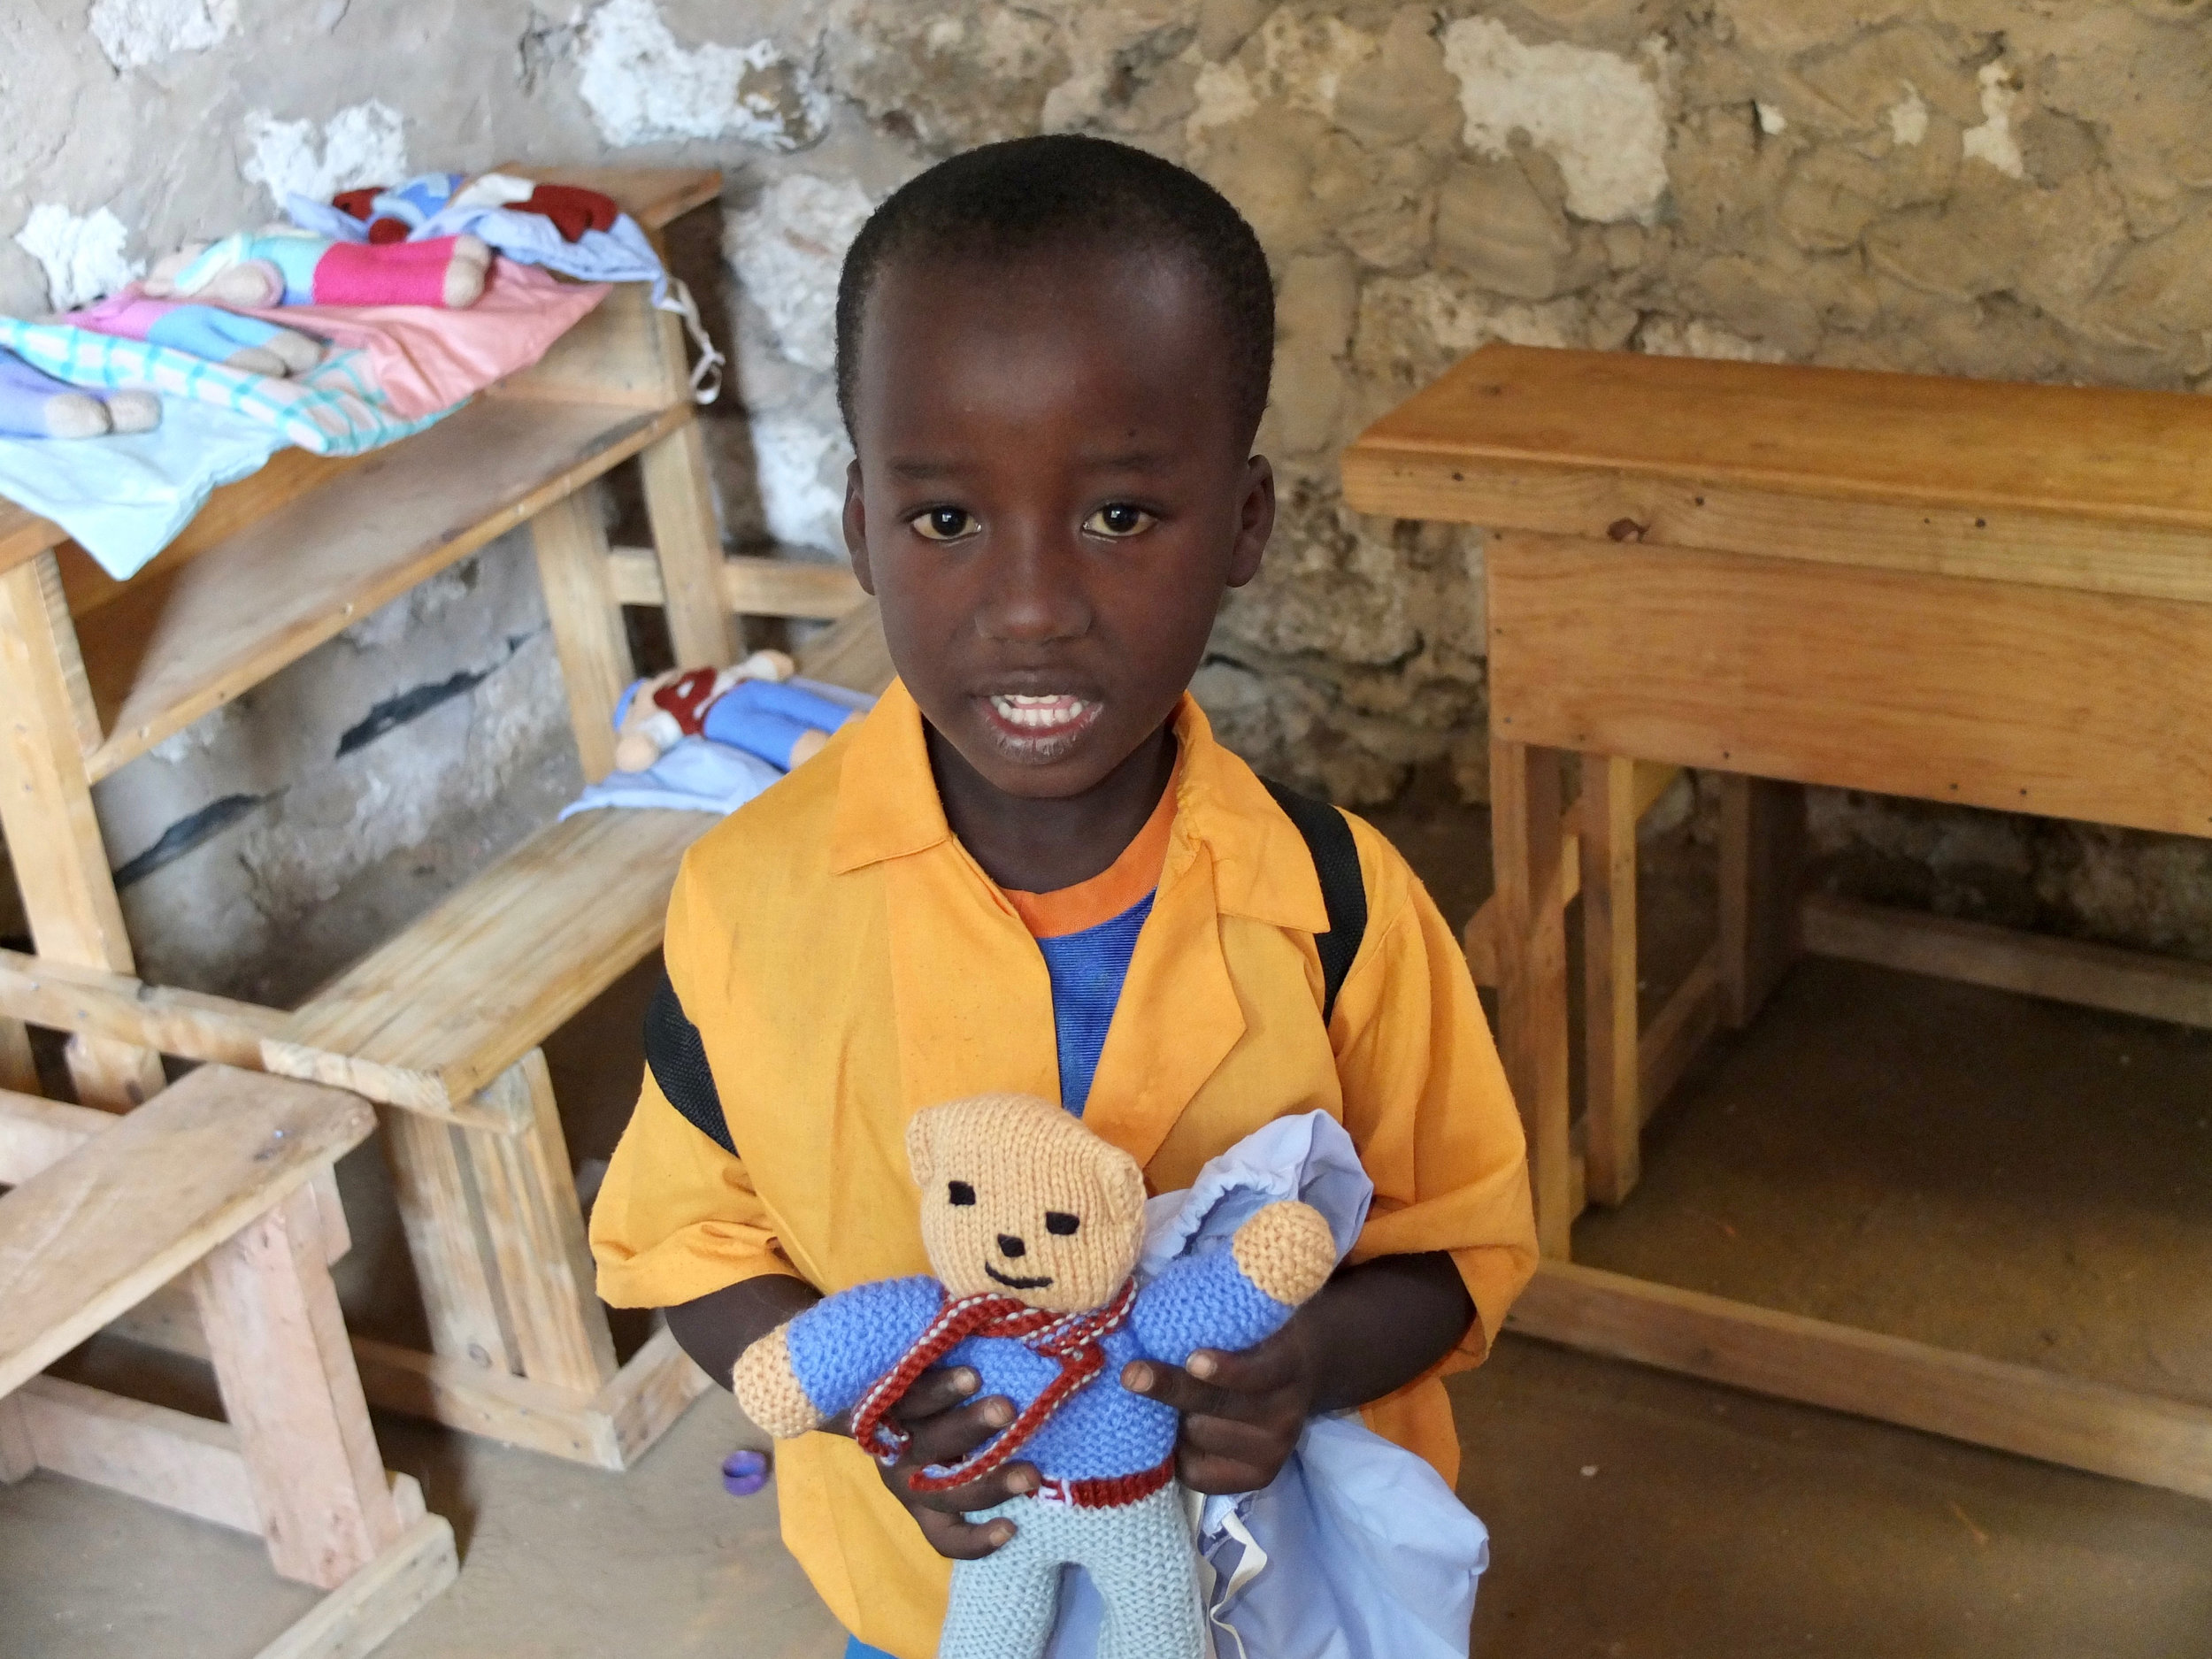 Steven in January 2013 receiving a teddy from Milele, before he was sponsored